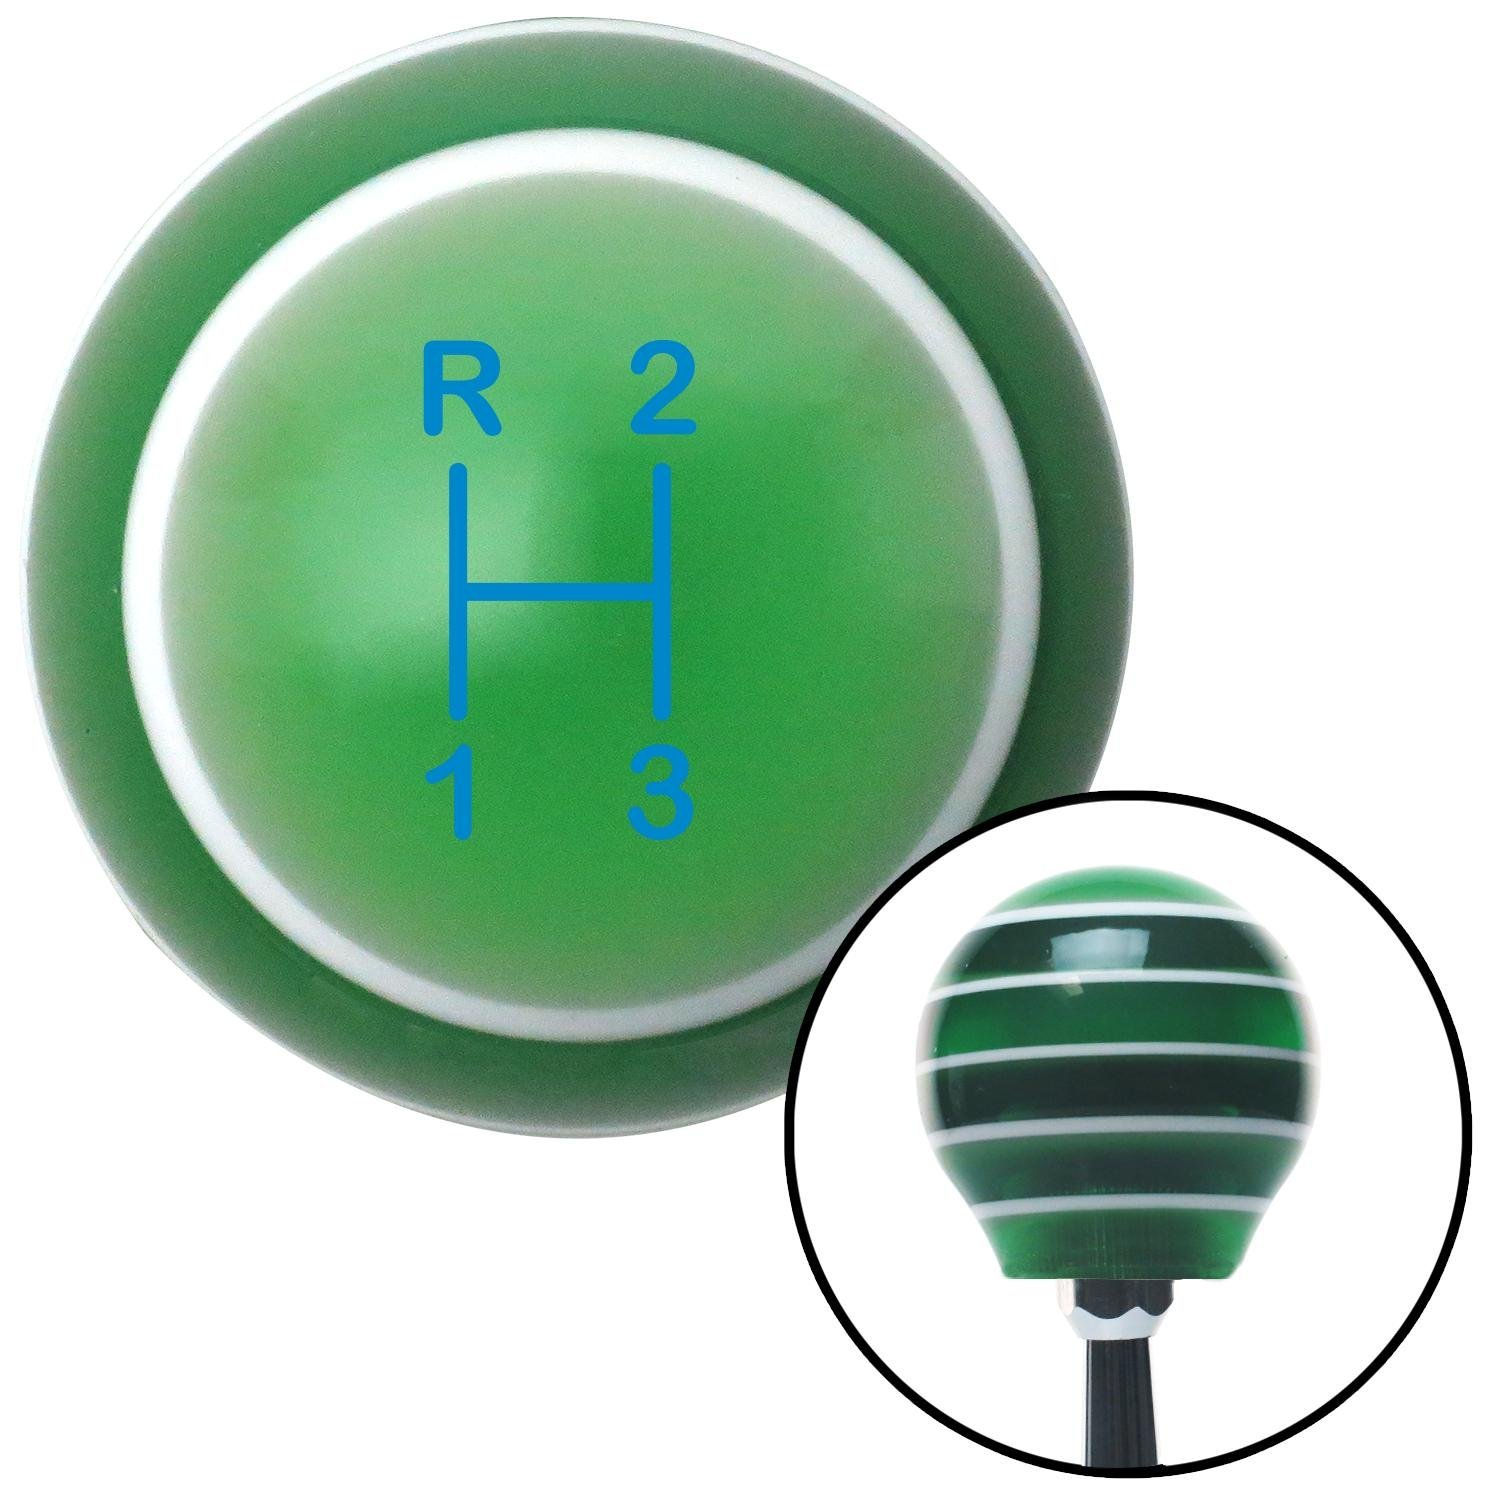 Blue Shift Pattern 11n American Shifter 126851 Green Stripe Shift Knob with M16 x 1.5 Insert